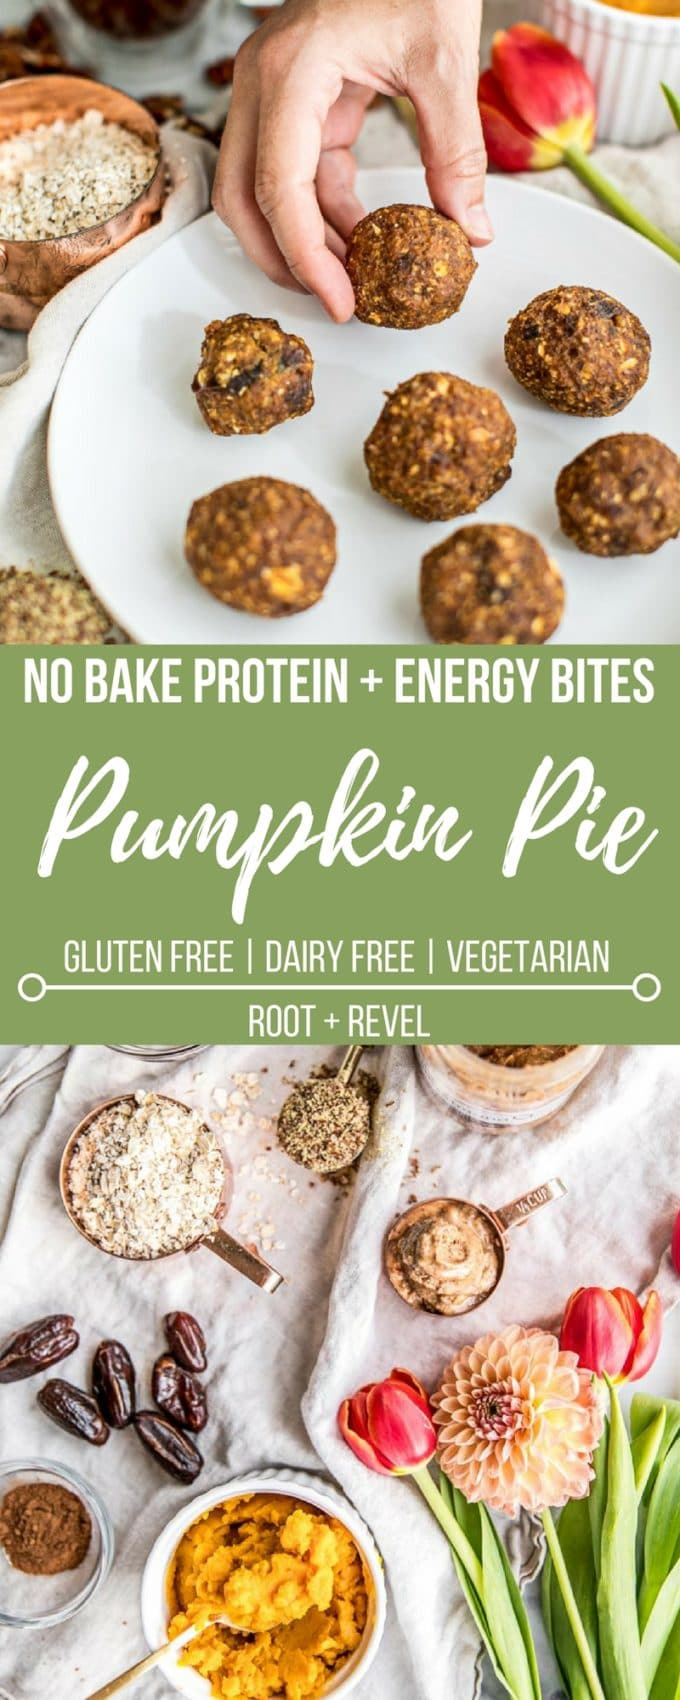 These easy No Bake Energy Balls + Pumpkin Pie Protein Bites are a delicious and healthy gluten free snack or breakfast bursting with fiber, plant-based protein and Vitamin A--the perfect morning energy boost! This clean eating recipe is perfect for adults and kids alike, filled with pumpkin, dates, oats, flax seed, pecans and almond butter. Sweetened with a touch of maple syrup, these healthy treats are refined sugar-free and vegan, too!